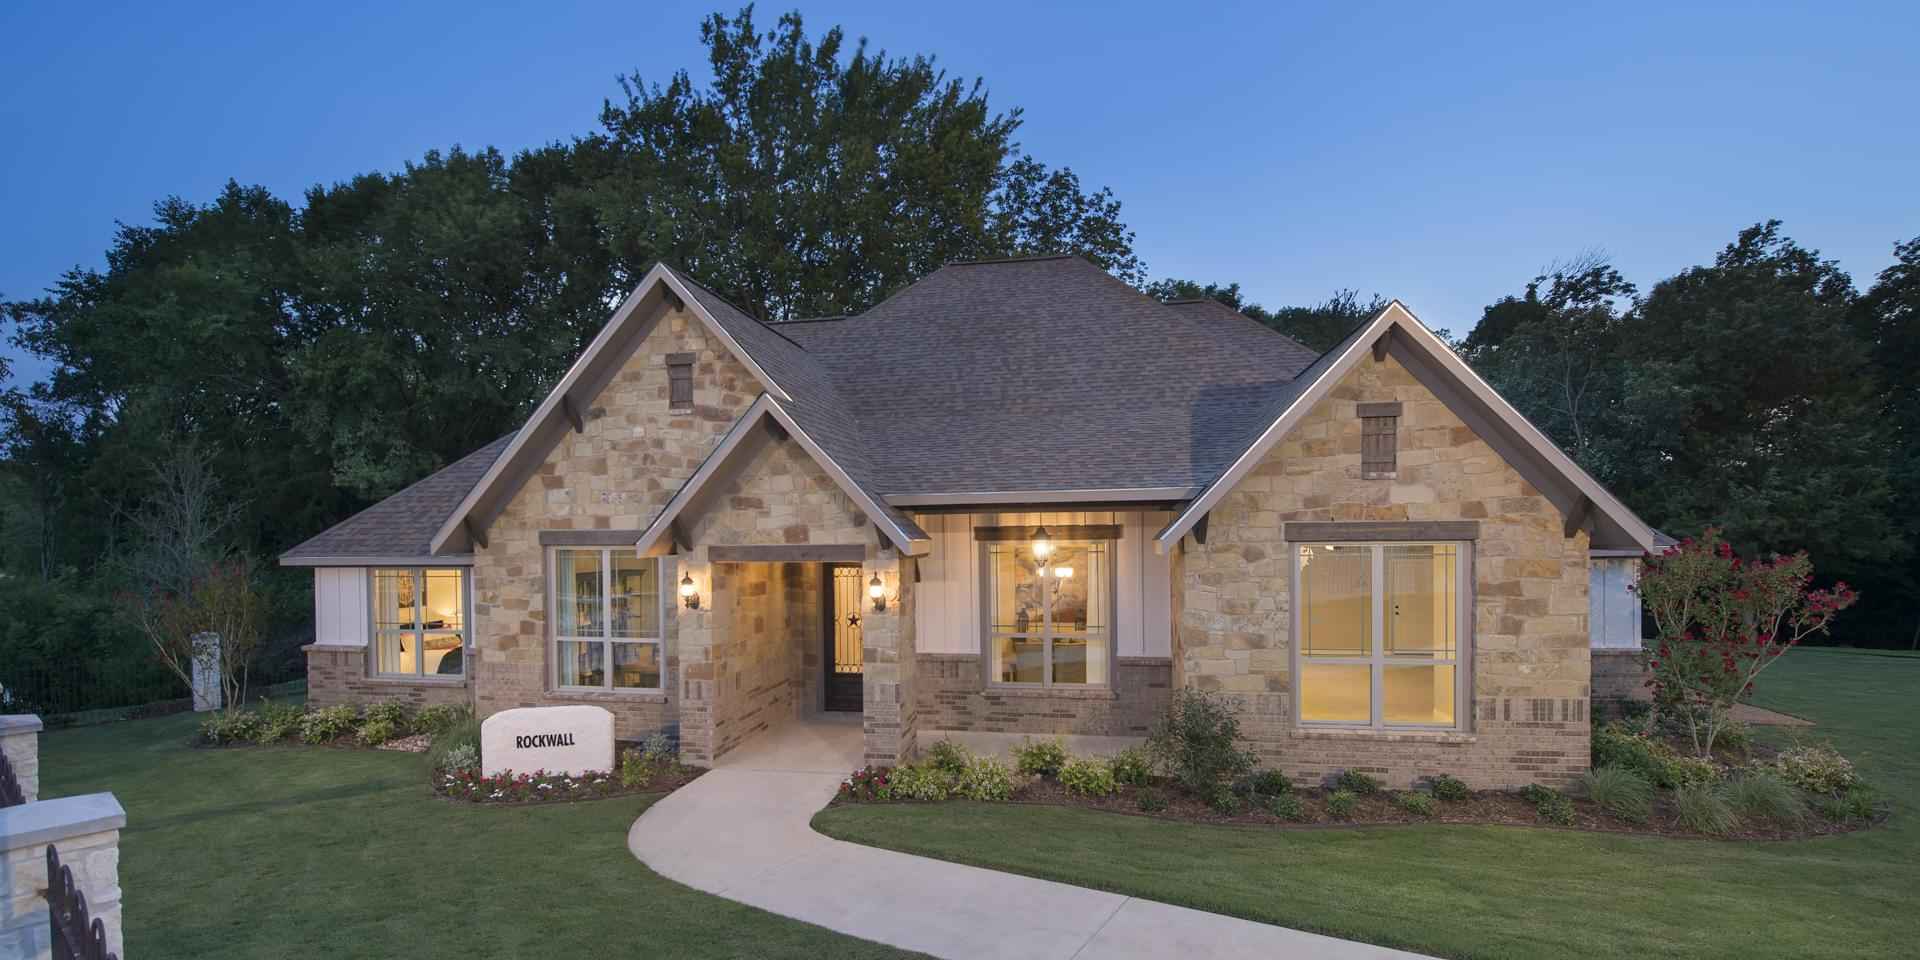 The Rockwall Custom Home Plan from Tilson Homes